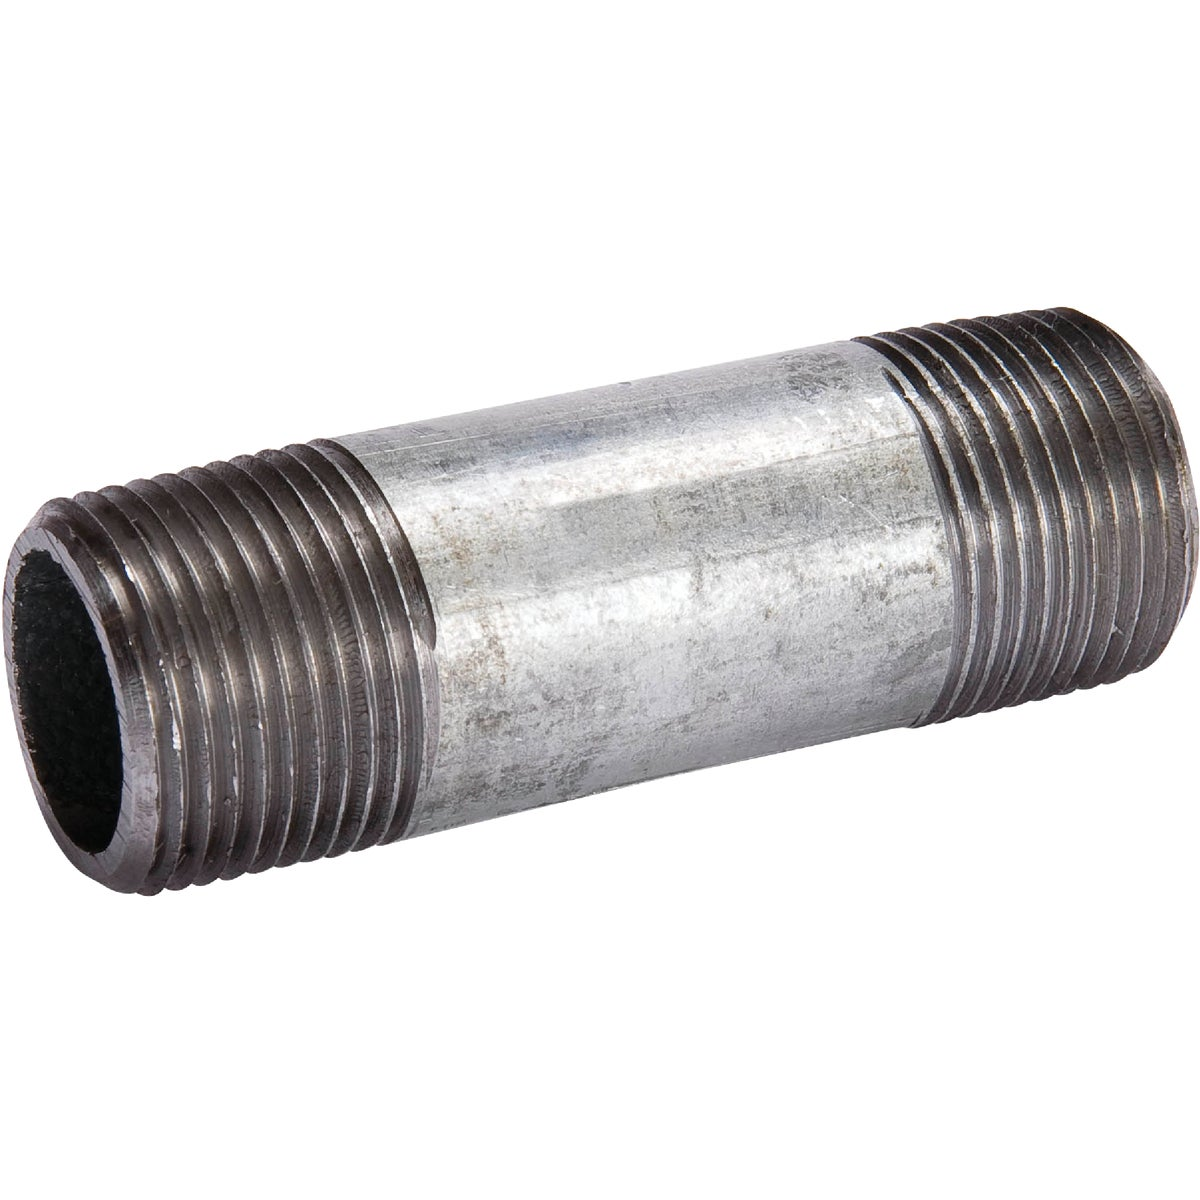 1/4X5-1/2 GALV NIPPLE - 10209 by Southland Pipe Nippl